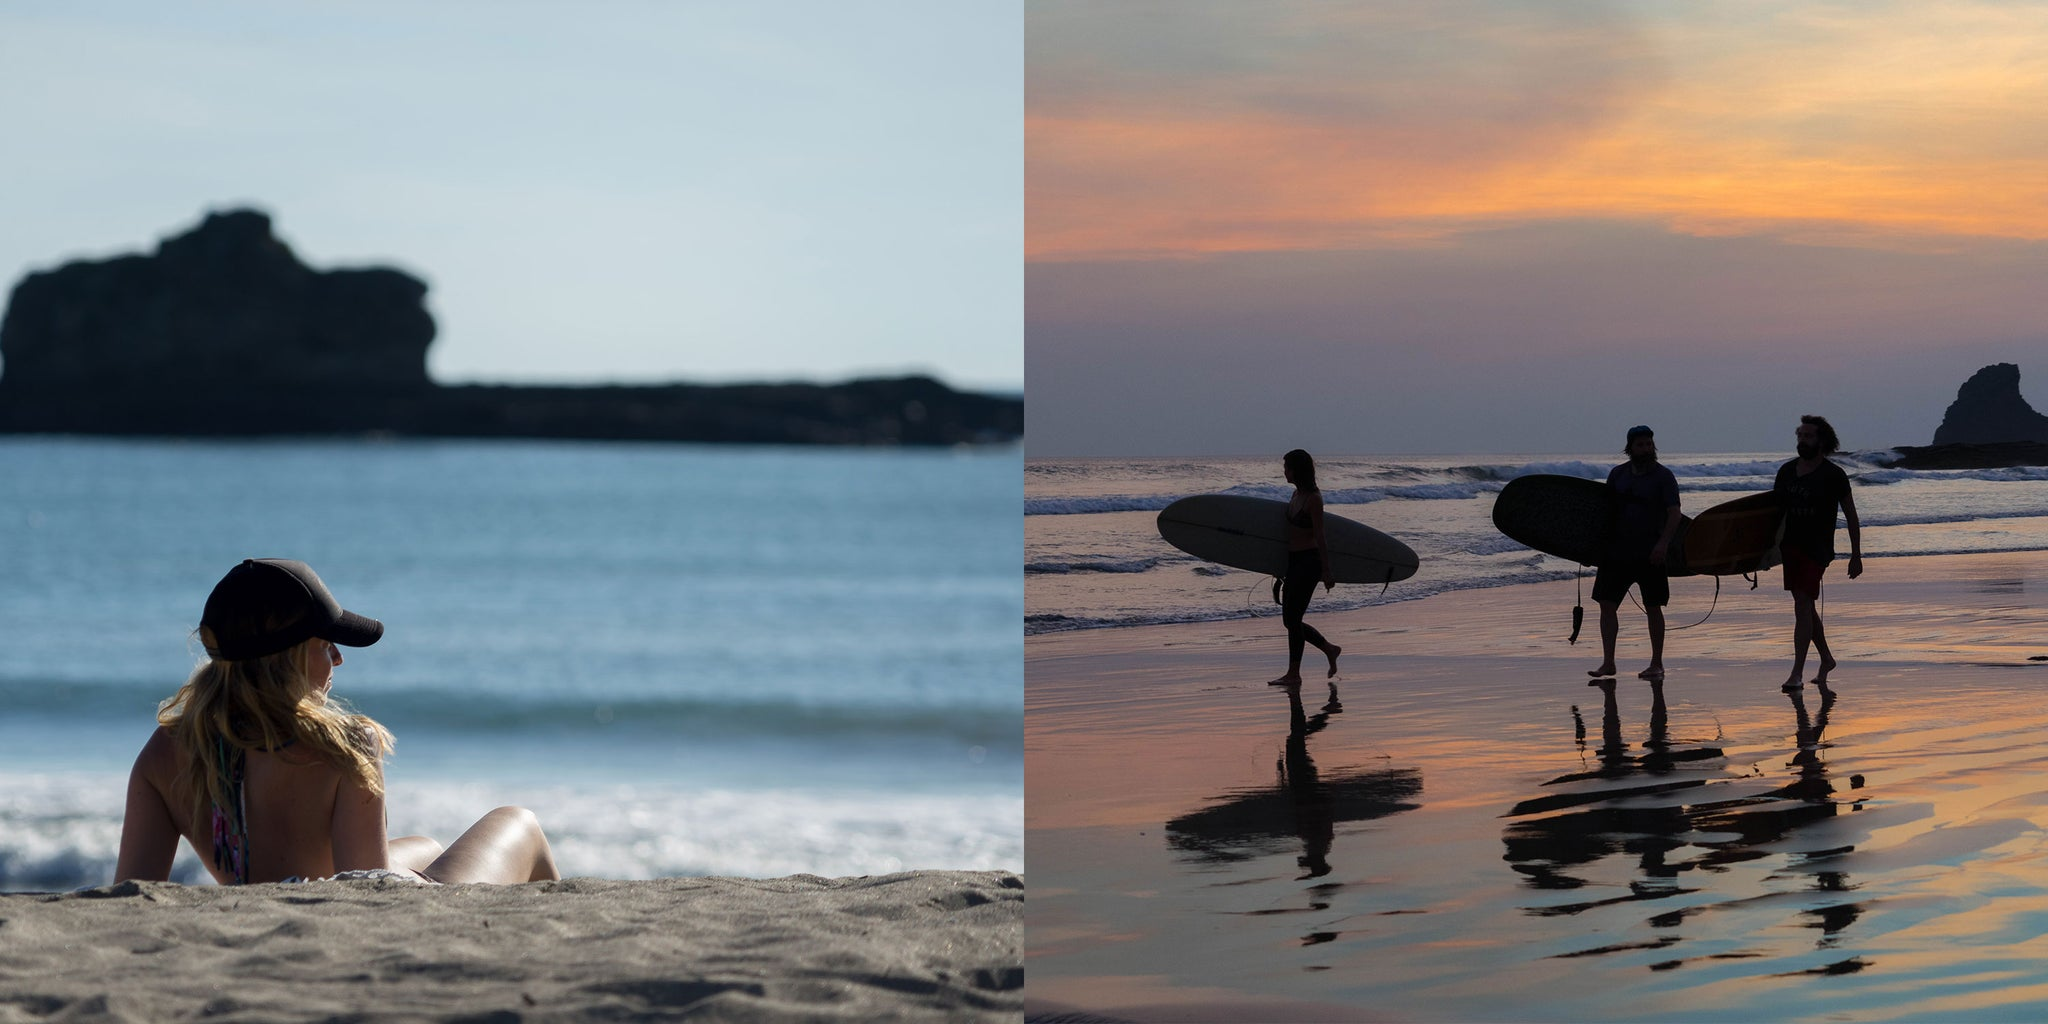 Bather - Excellent Adventures - Surfing in Nicaragua